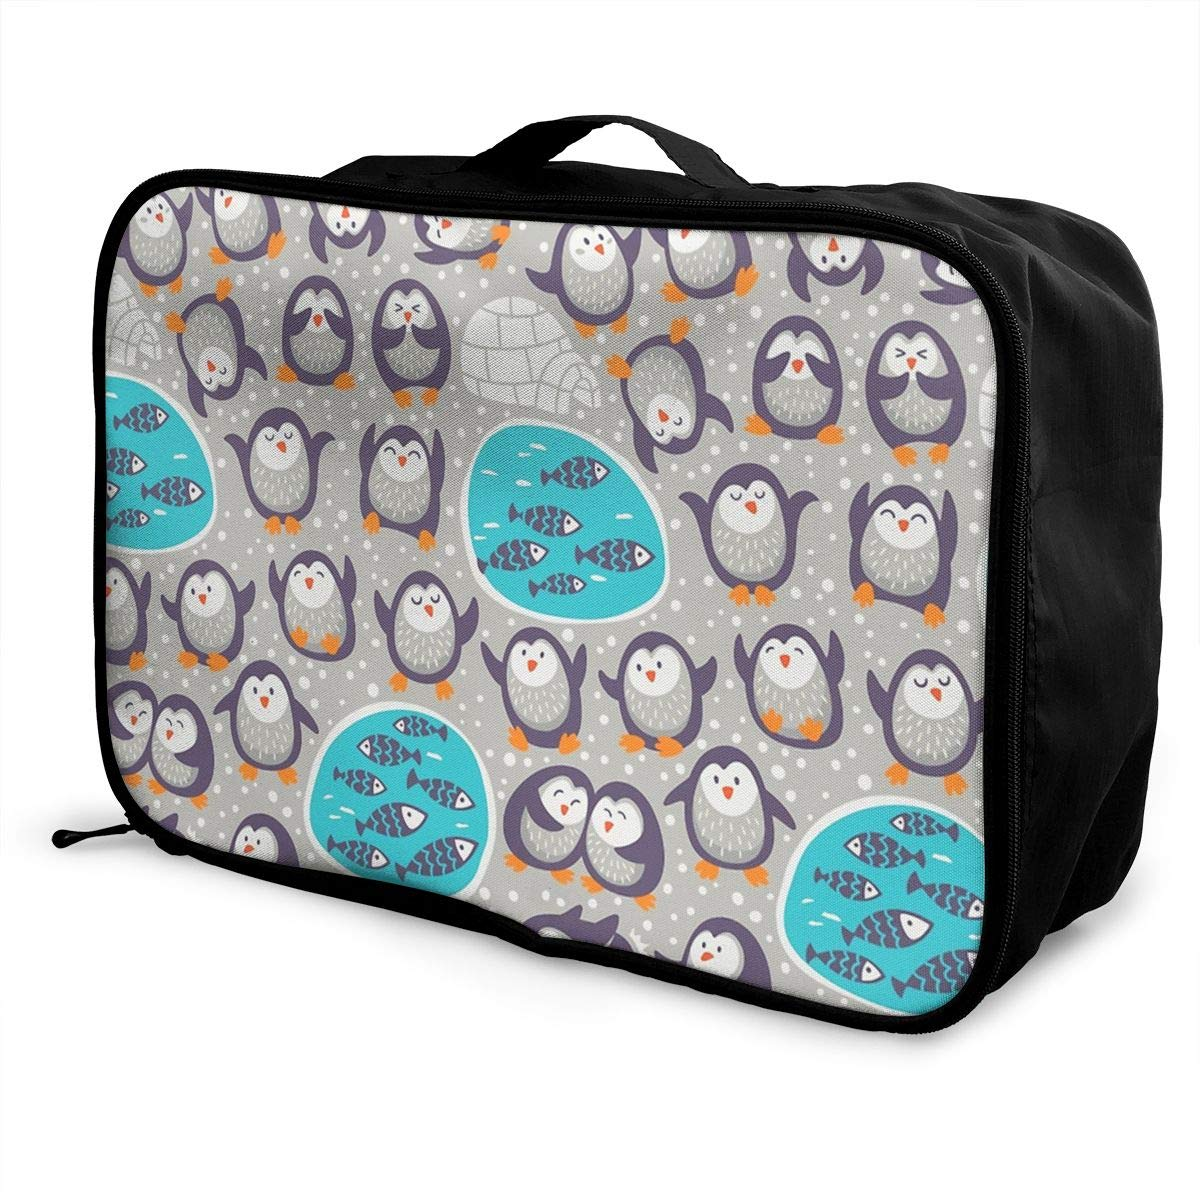 Penguins And Fish Travel Pouch Carry-on Duffle Bag Lightweight Waterproof Portable Luggage Bag Attach To Suitcase